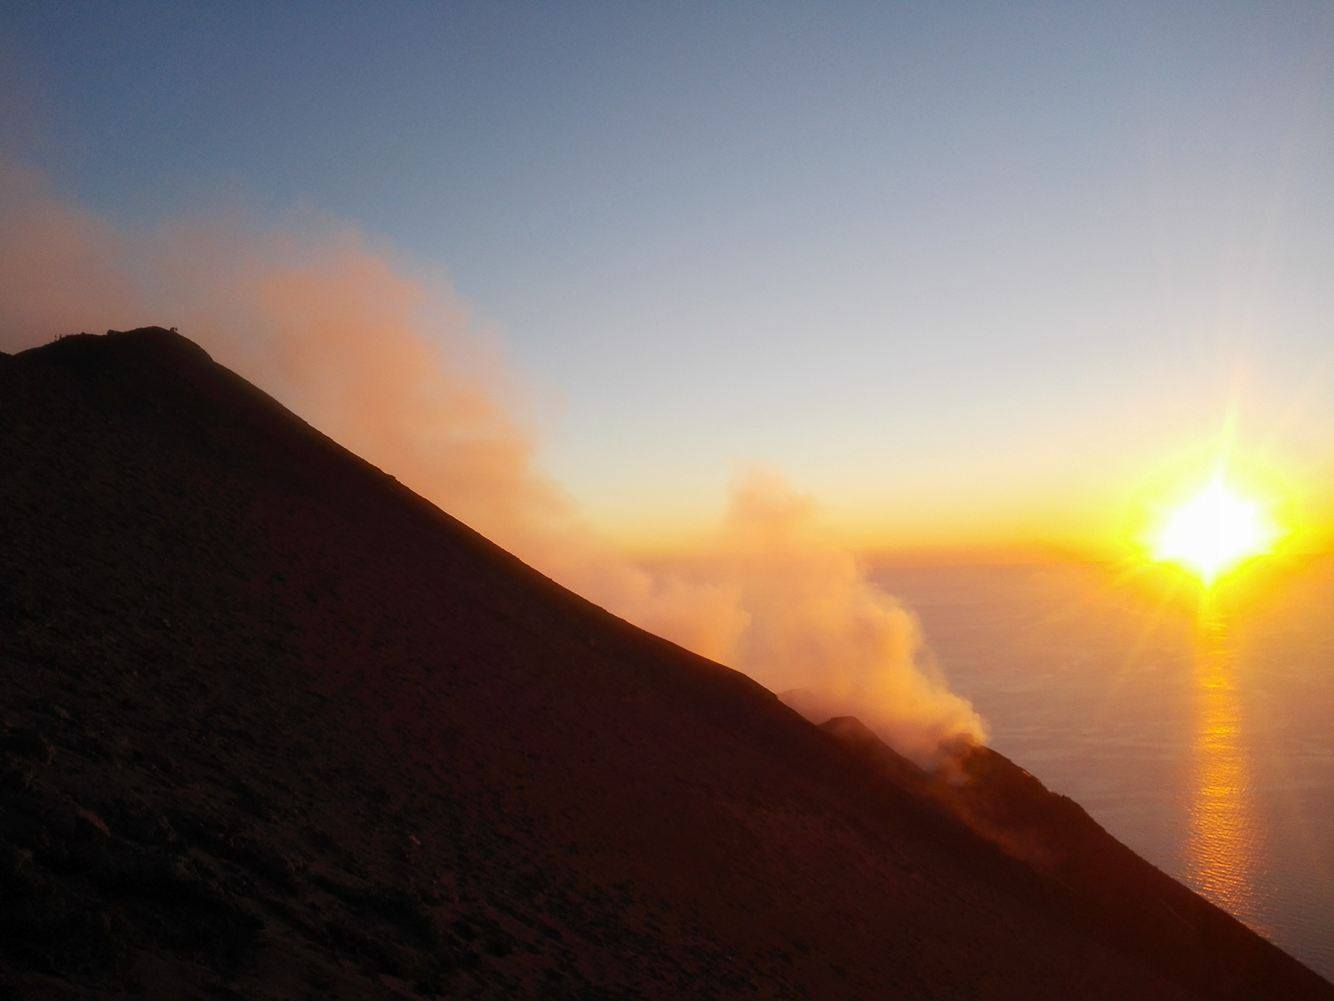 Future Lights on a volcanic landscape: l'intervista a Claudio Lucchesi	1° Parte